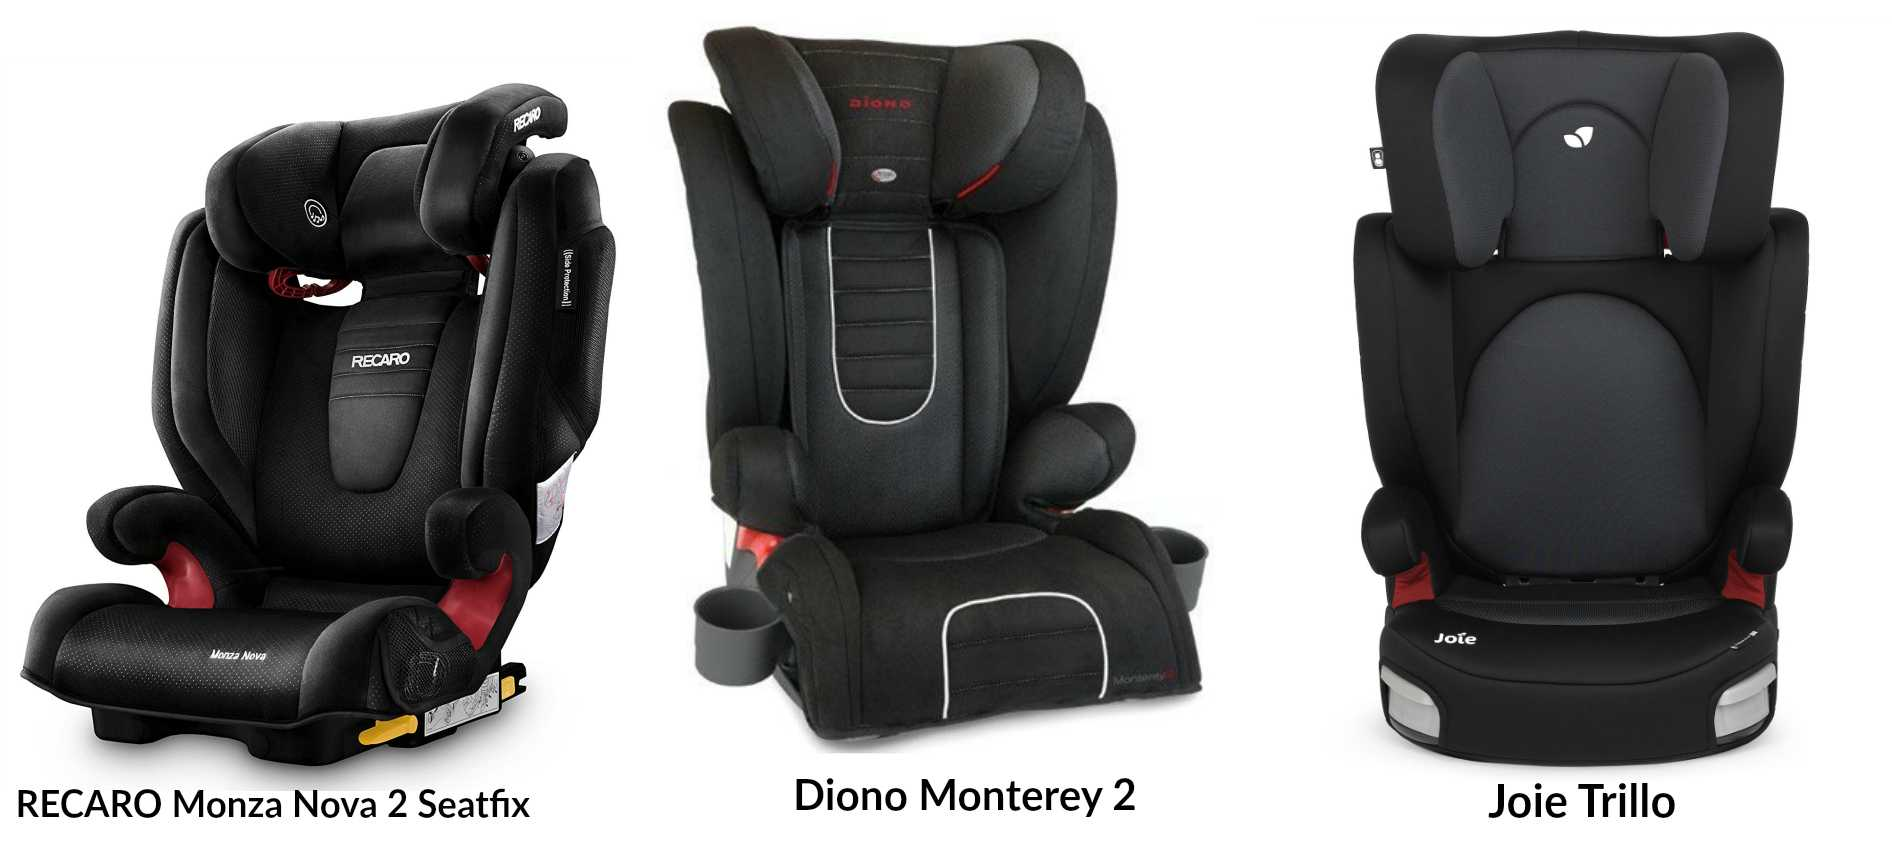 Credit Amazoncouk C For More Information On Car Seats